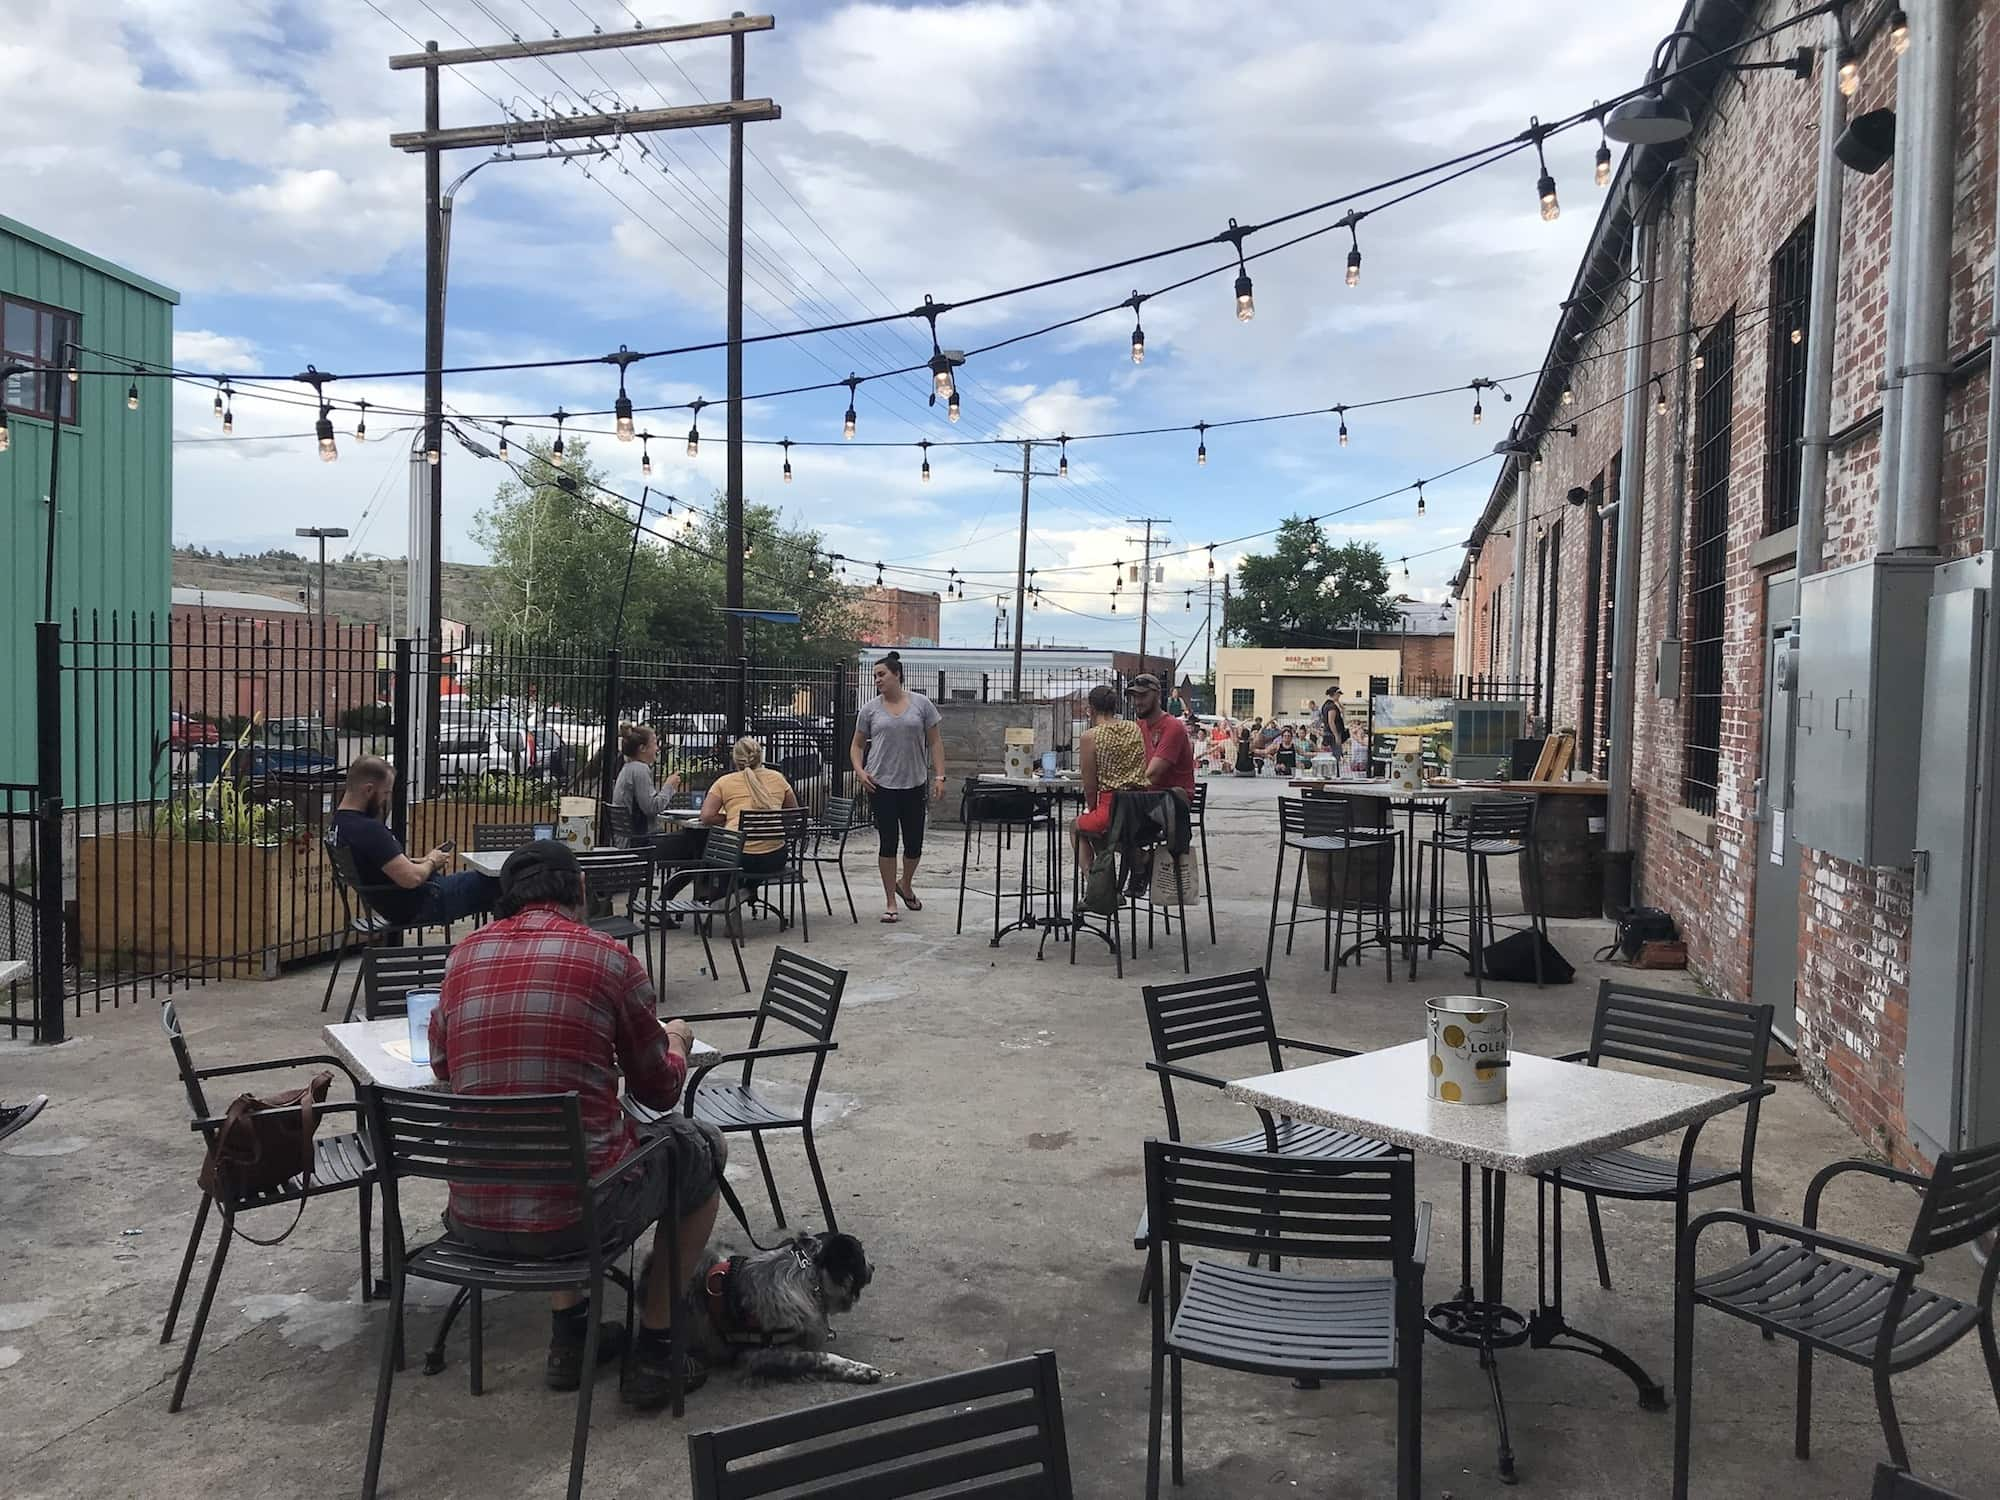 Read our top 7 reasons to visit Billings, Montana now. From a hopping beer scene to endless opportunities in the outdoors, Billings is a must stop.